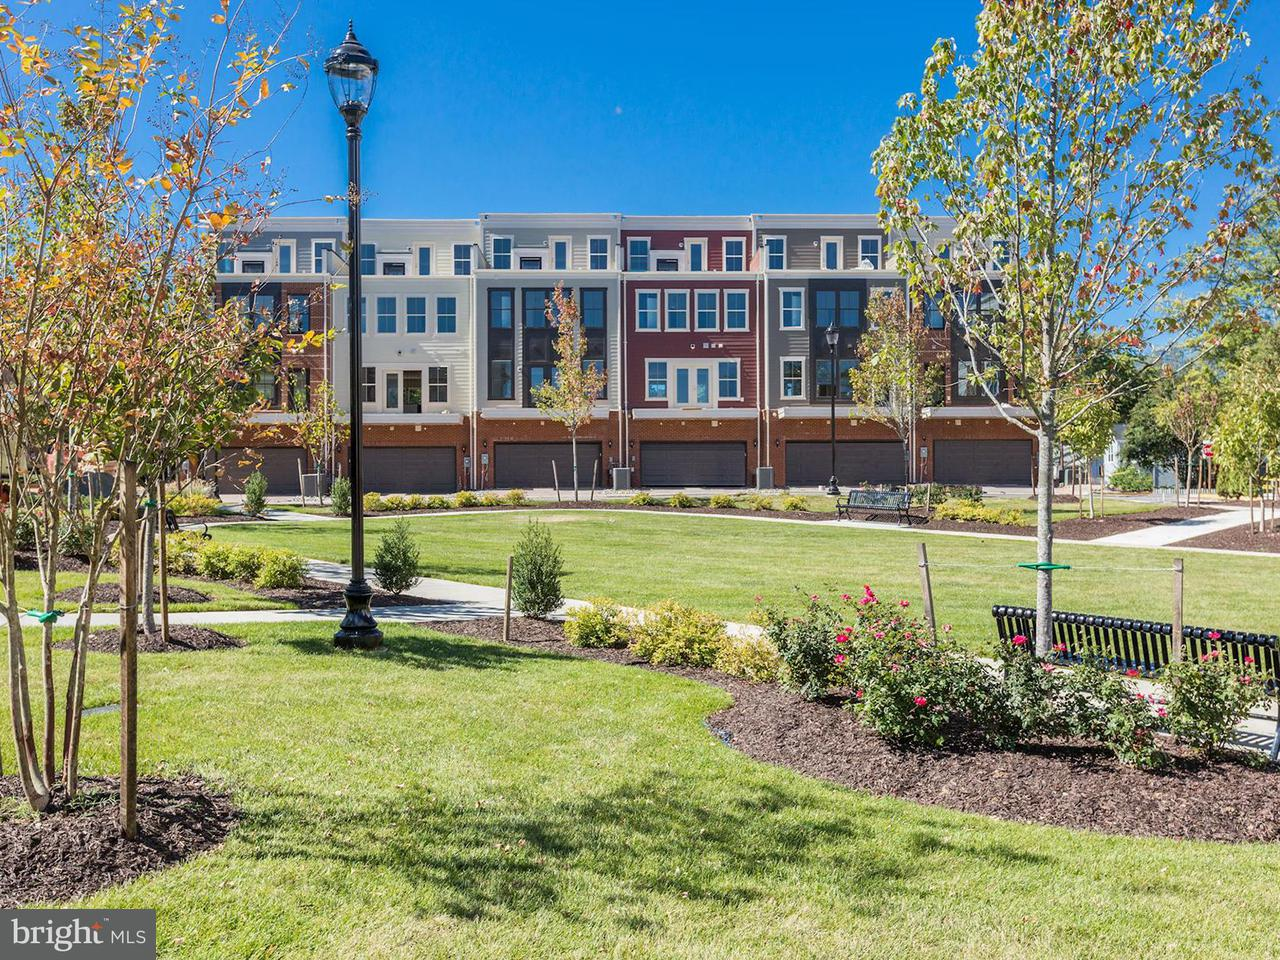 Additional photo for property listing at 3980 Norton Place 3980 Norton Place Fairfax, Βιρτζινια 22031 Ηνωμενεσ Πολιτειεσ